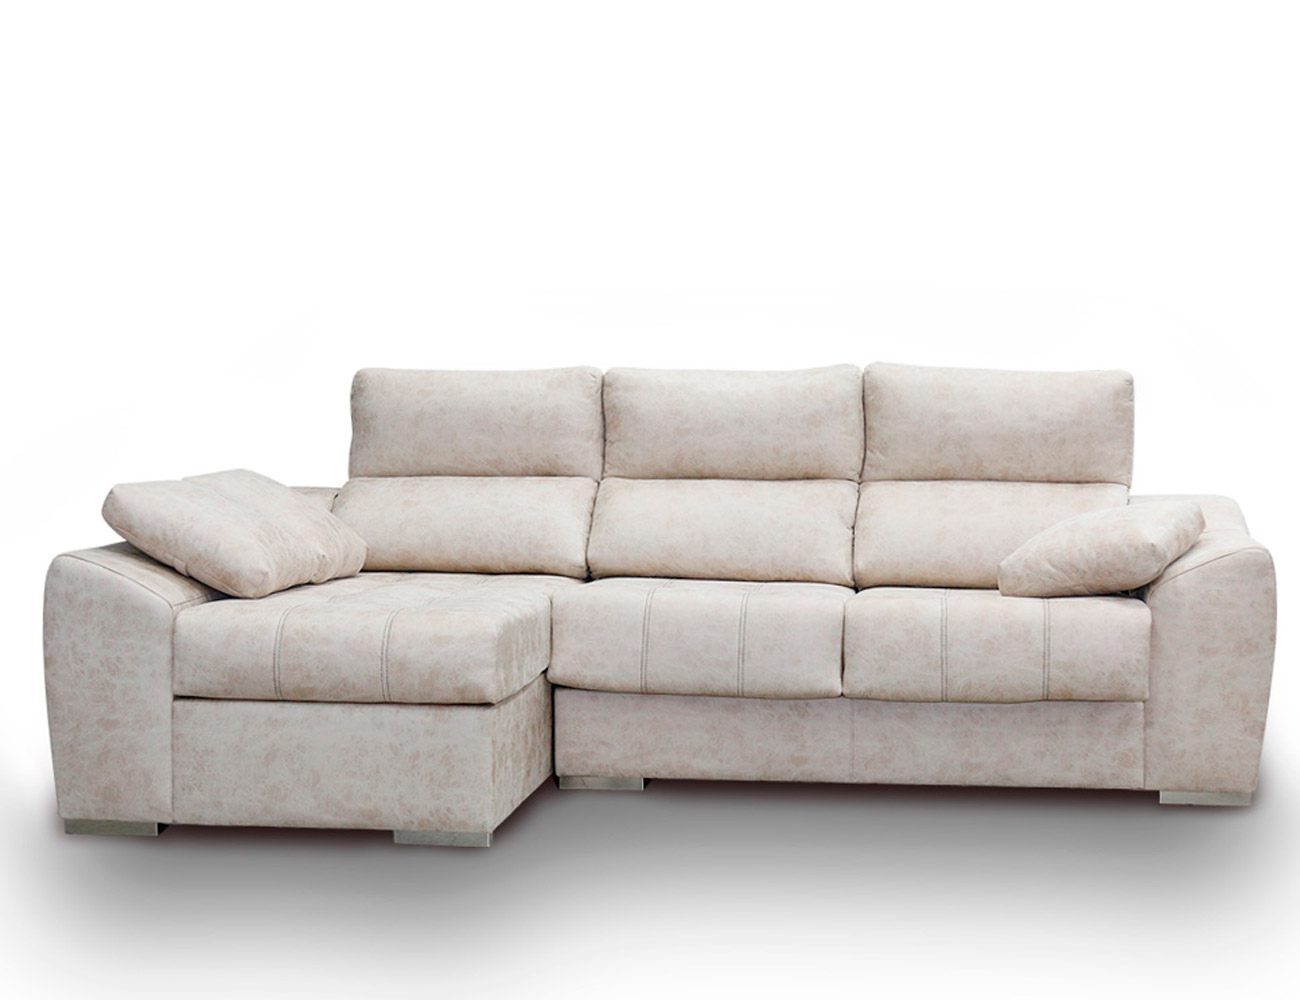 Sofa chaiselongue anti manchas beig blanco20